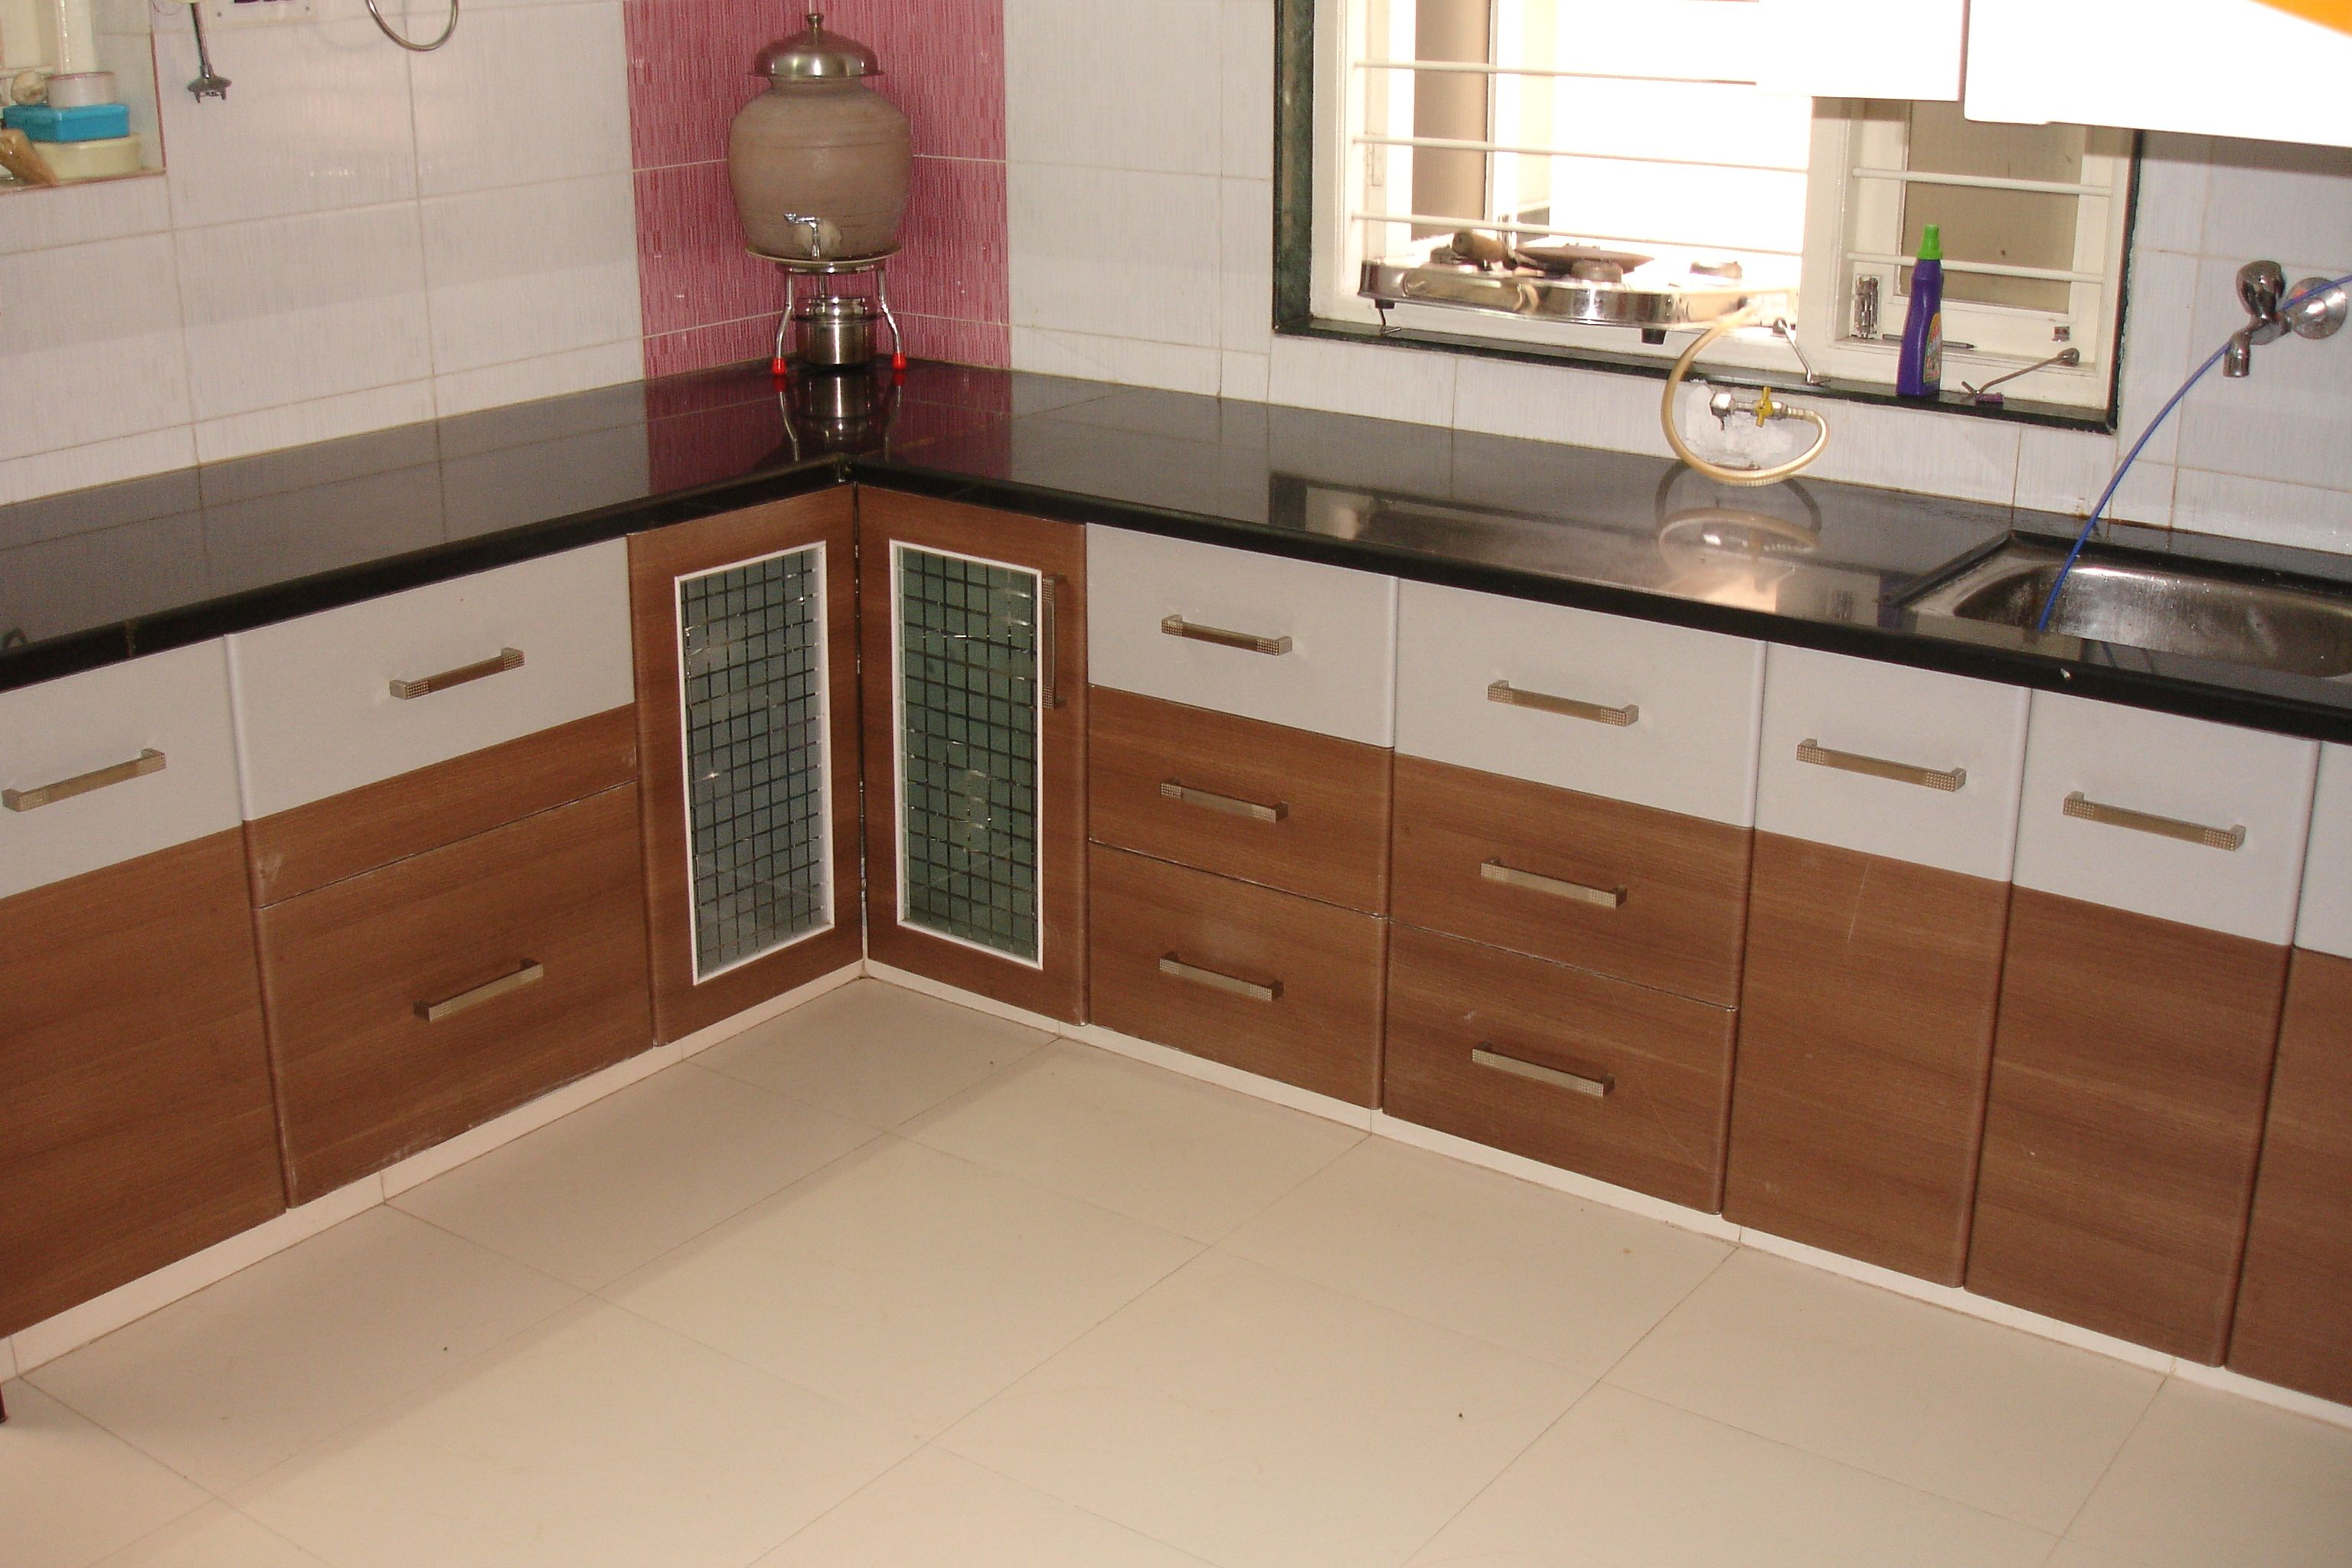 Kitchen Design Brands Mesmerizing Modular Kitchen From Rawat Furniture  Rawat's Moduclar Kitchens Decorating Design